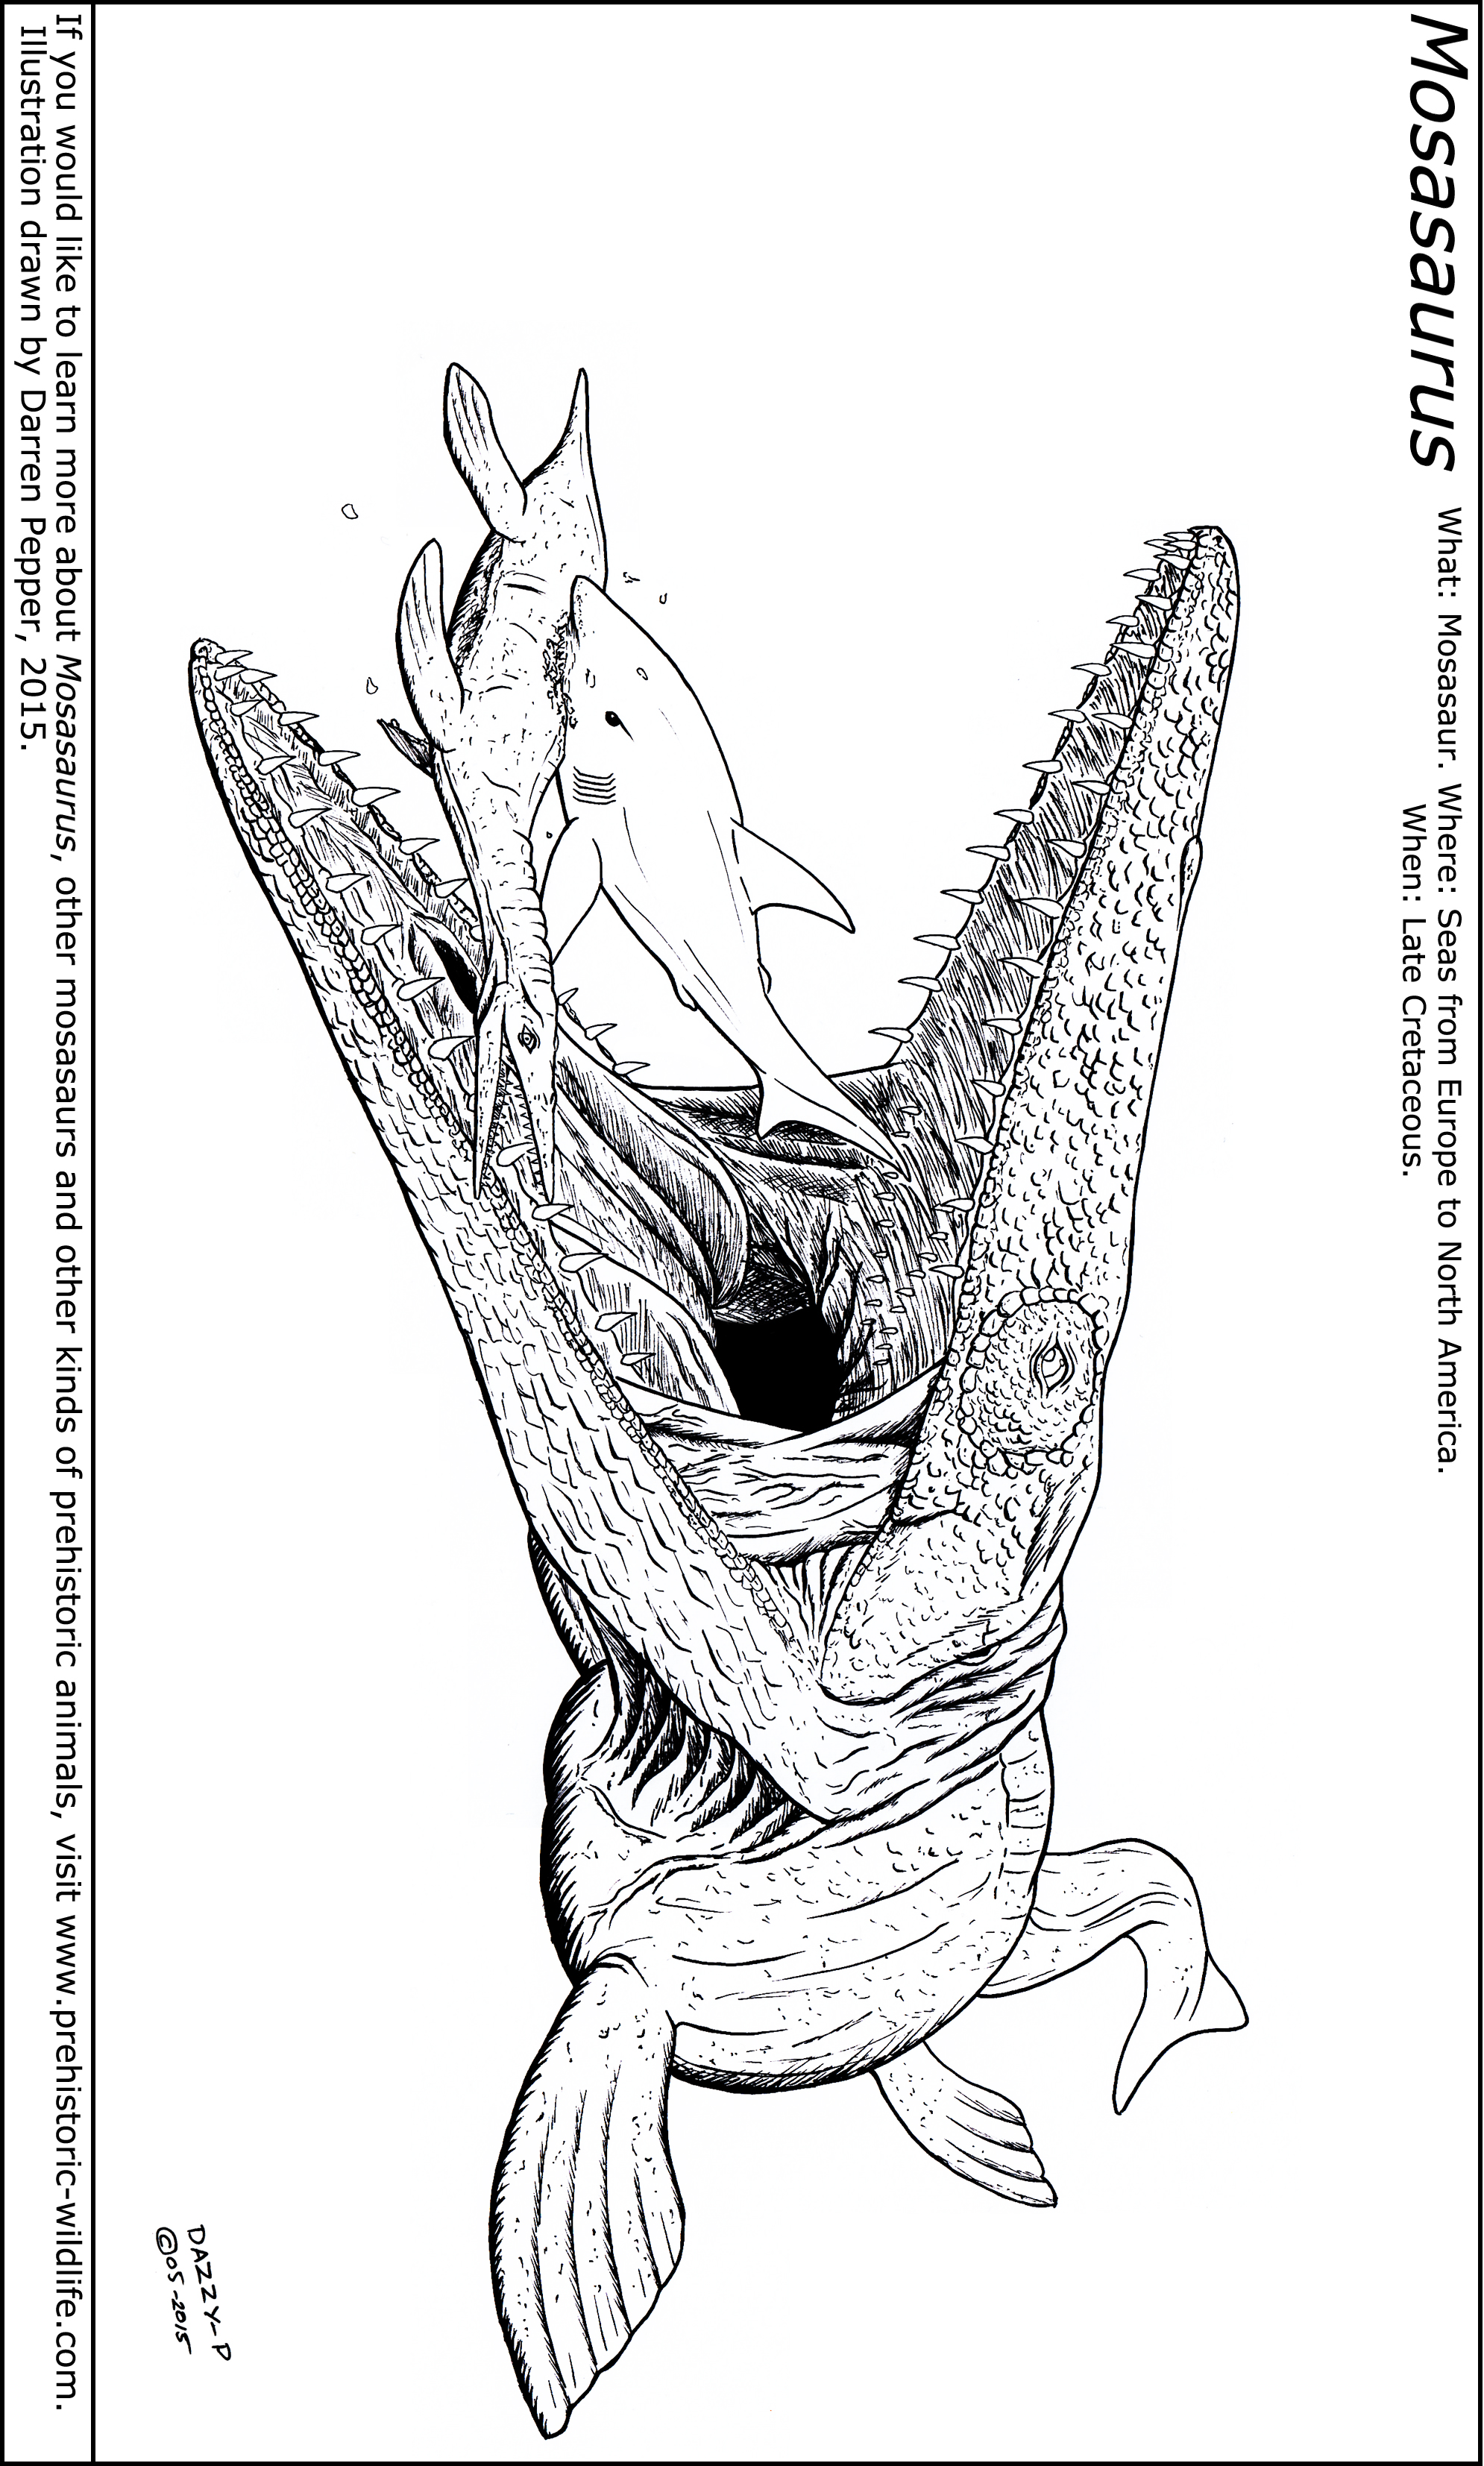 Mosasaurus dinosaur coloring page coloring pages - Leaellynasaura Coloring Page